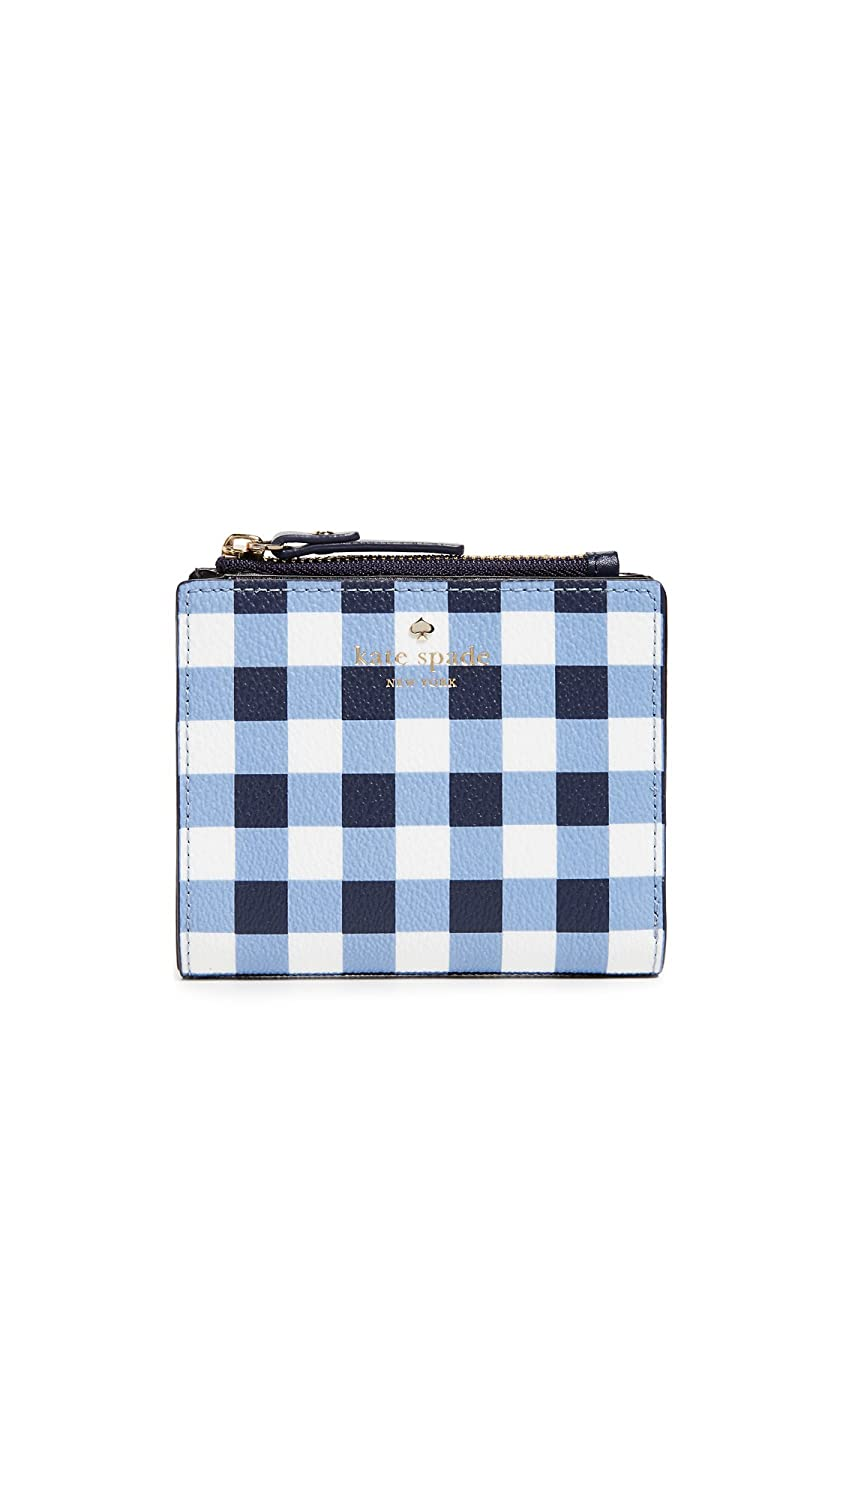 Kate Spade New York Women's Hyde Lane Adalyn Small Wallet Navy/White One Size